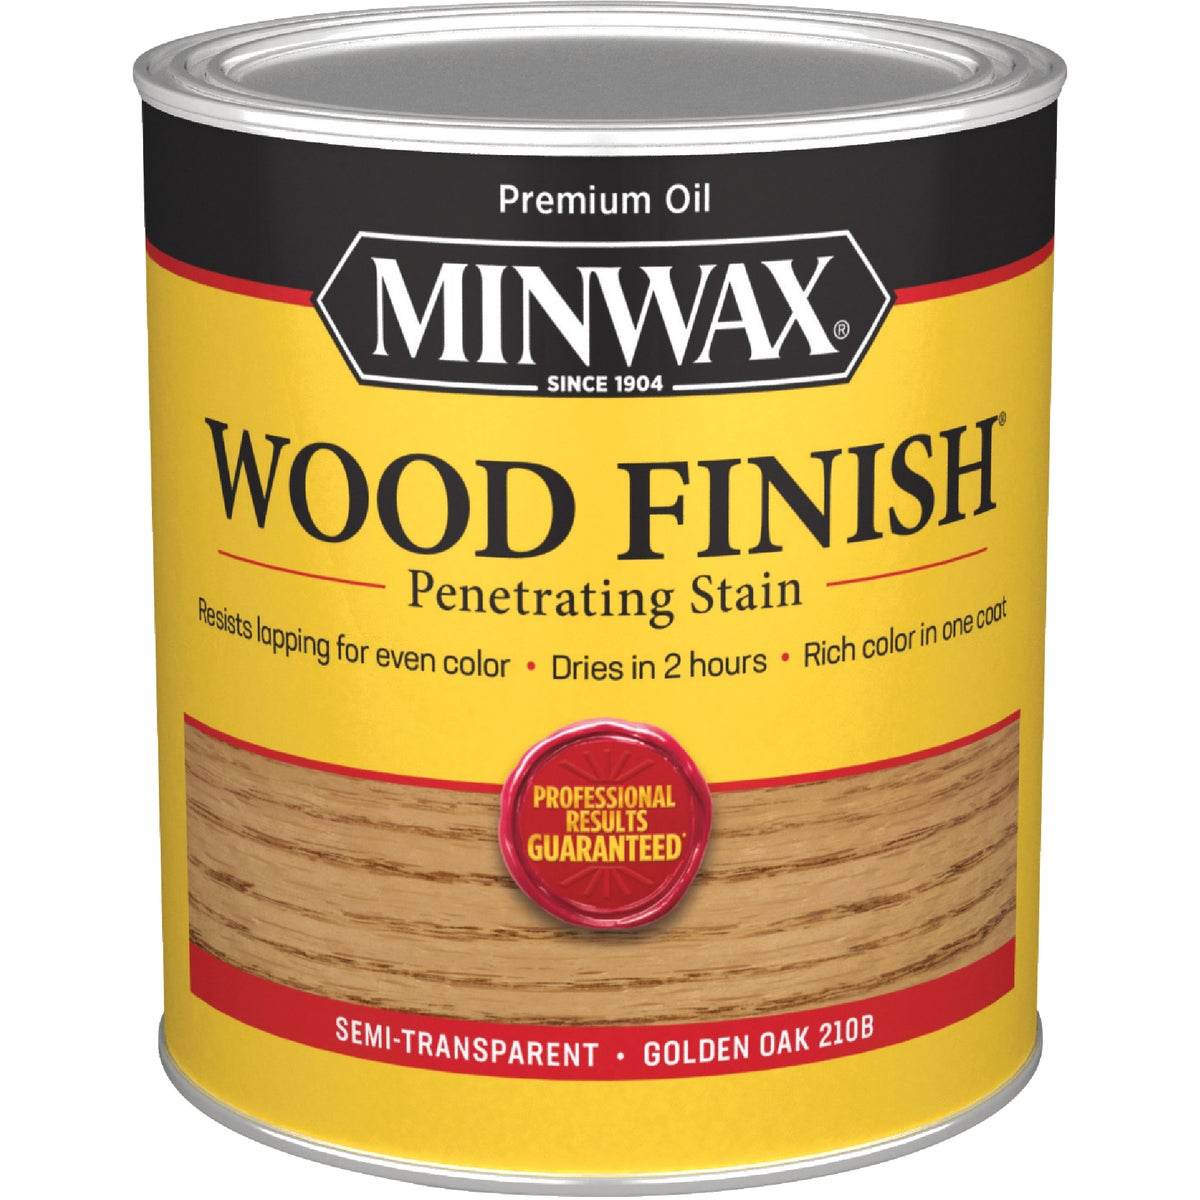 GOLDEN OAK WOOD STAIN - 70001 by Minwax Company